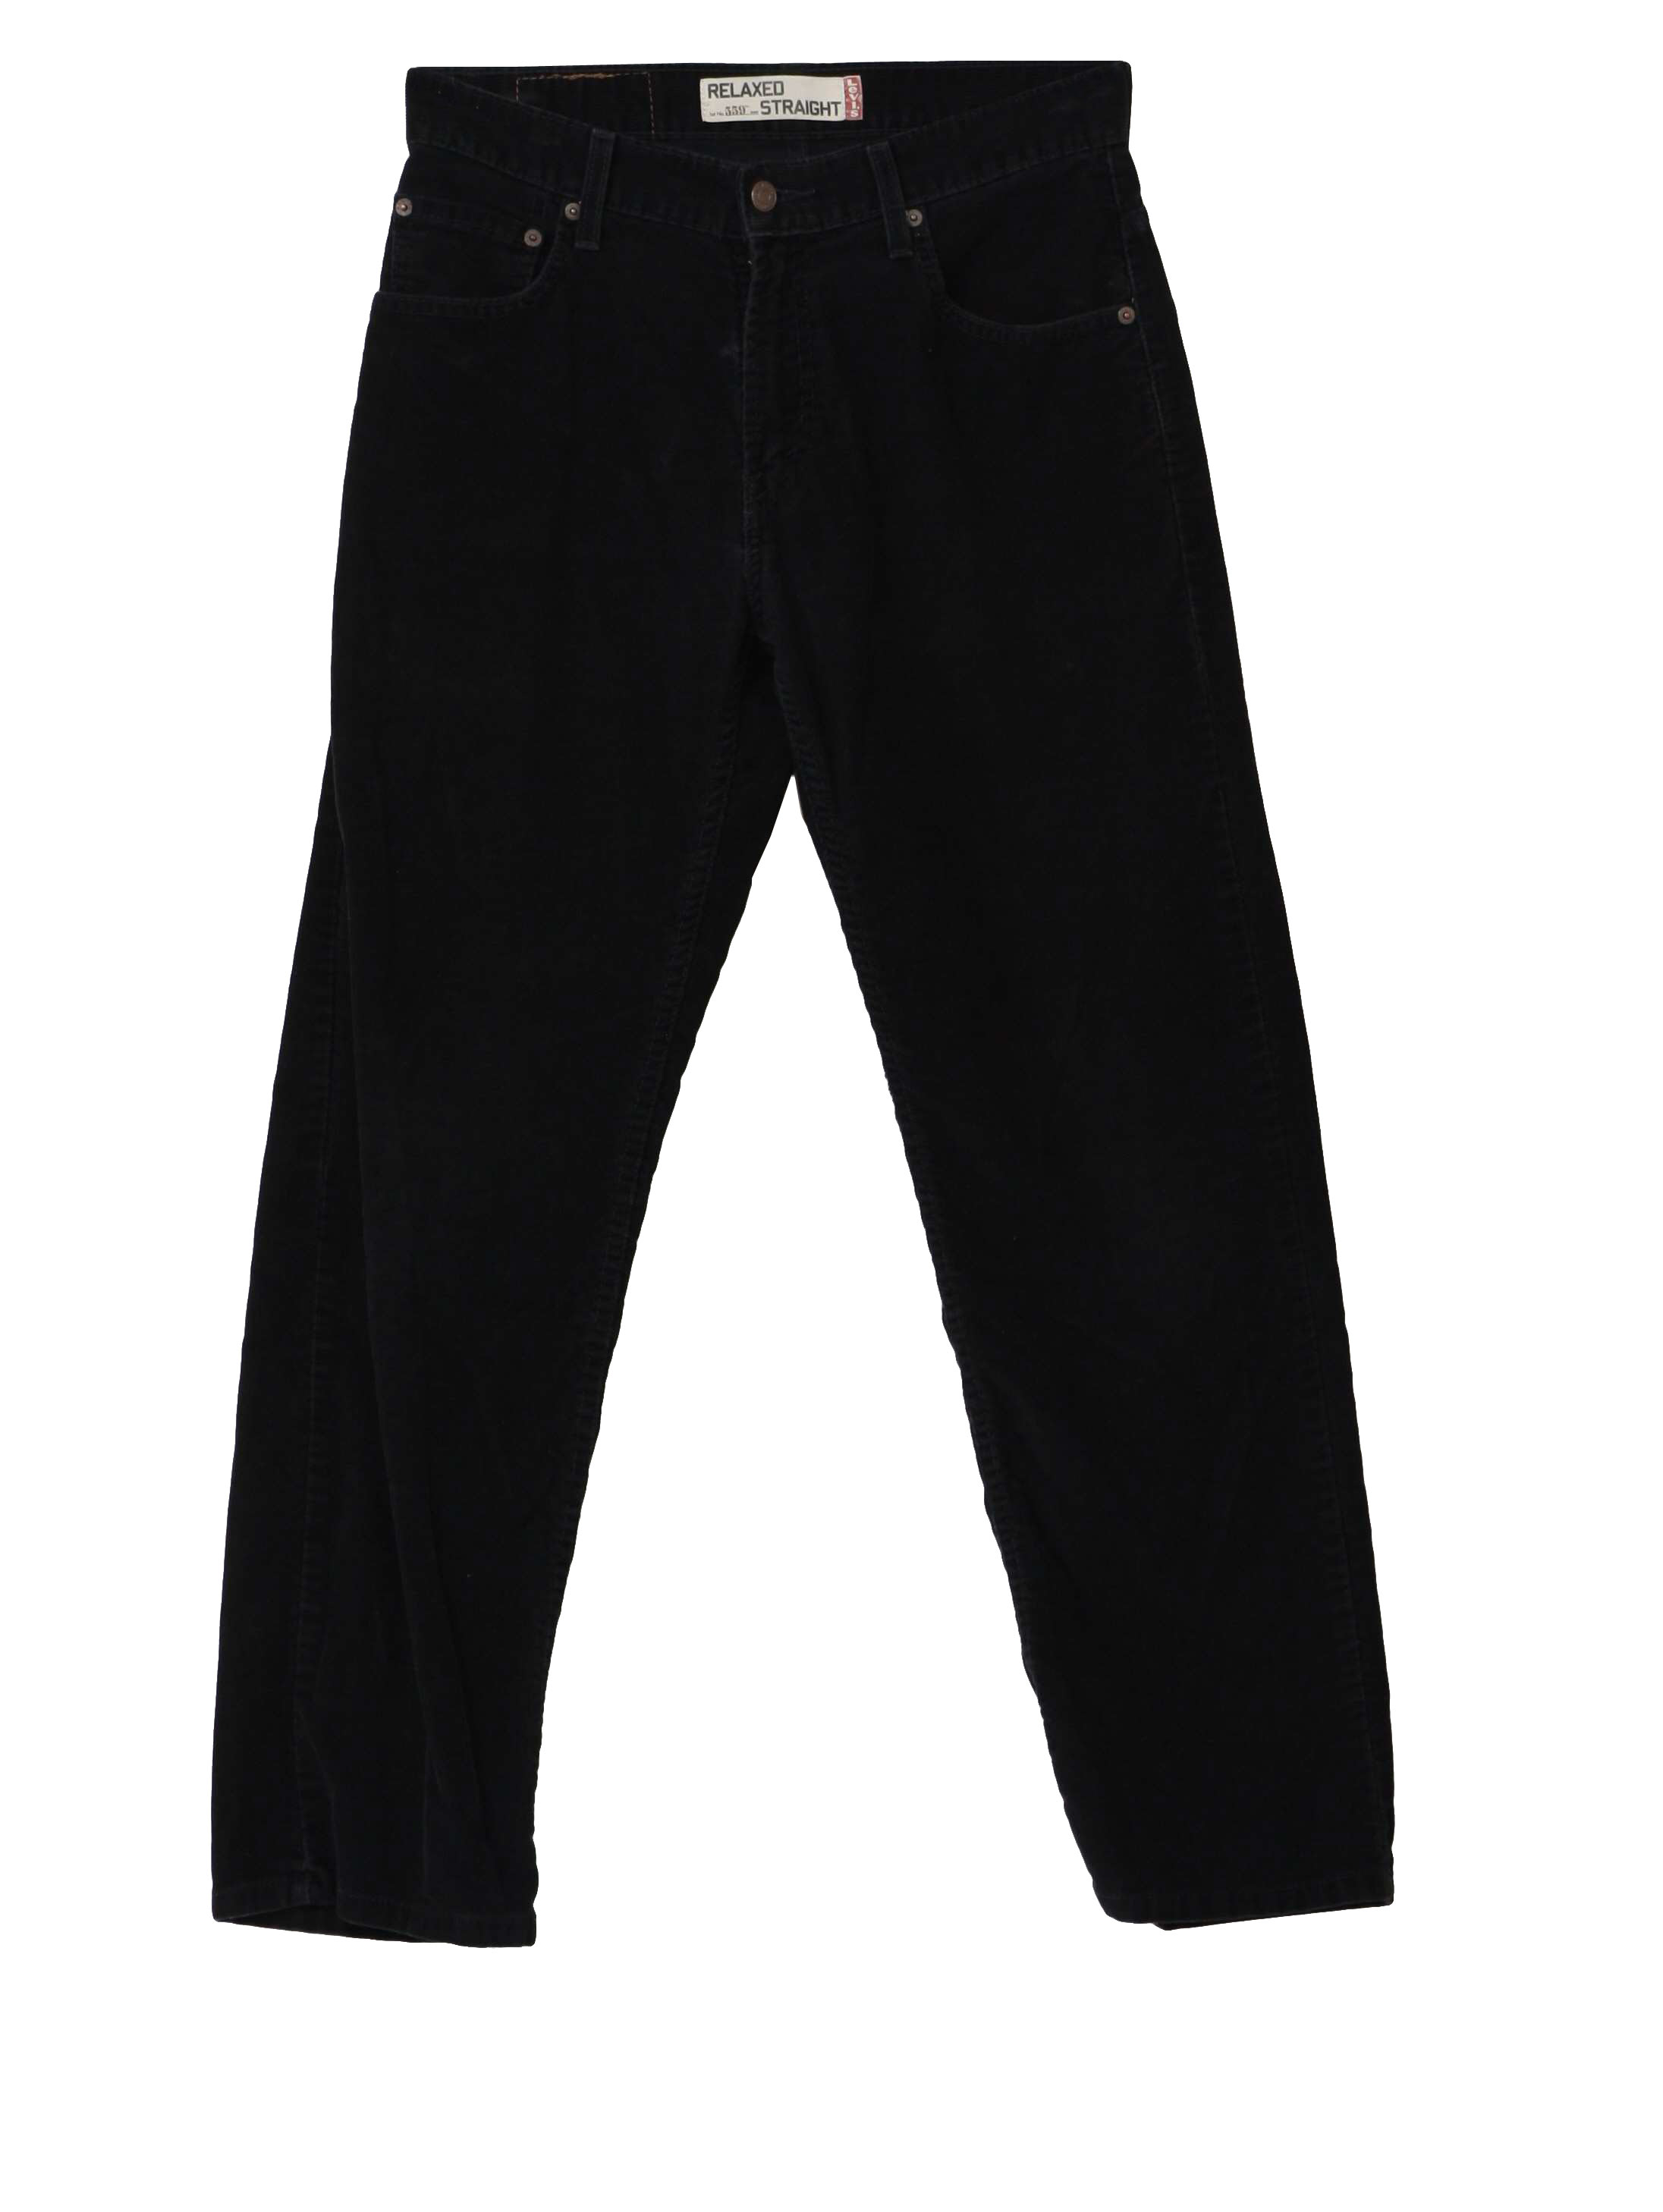 90&39s Vintage Pants: 90s -Levis- Mens black cotton polyester